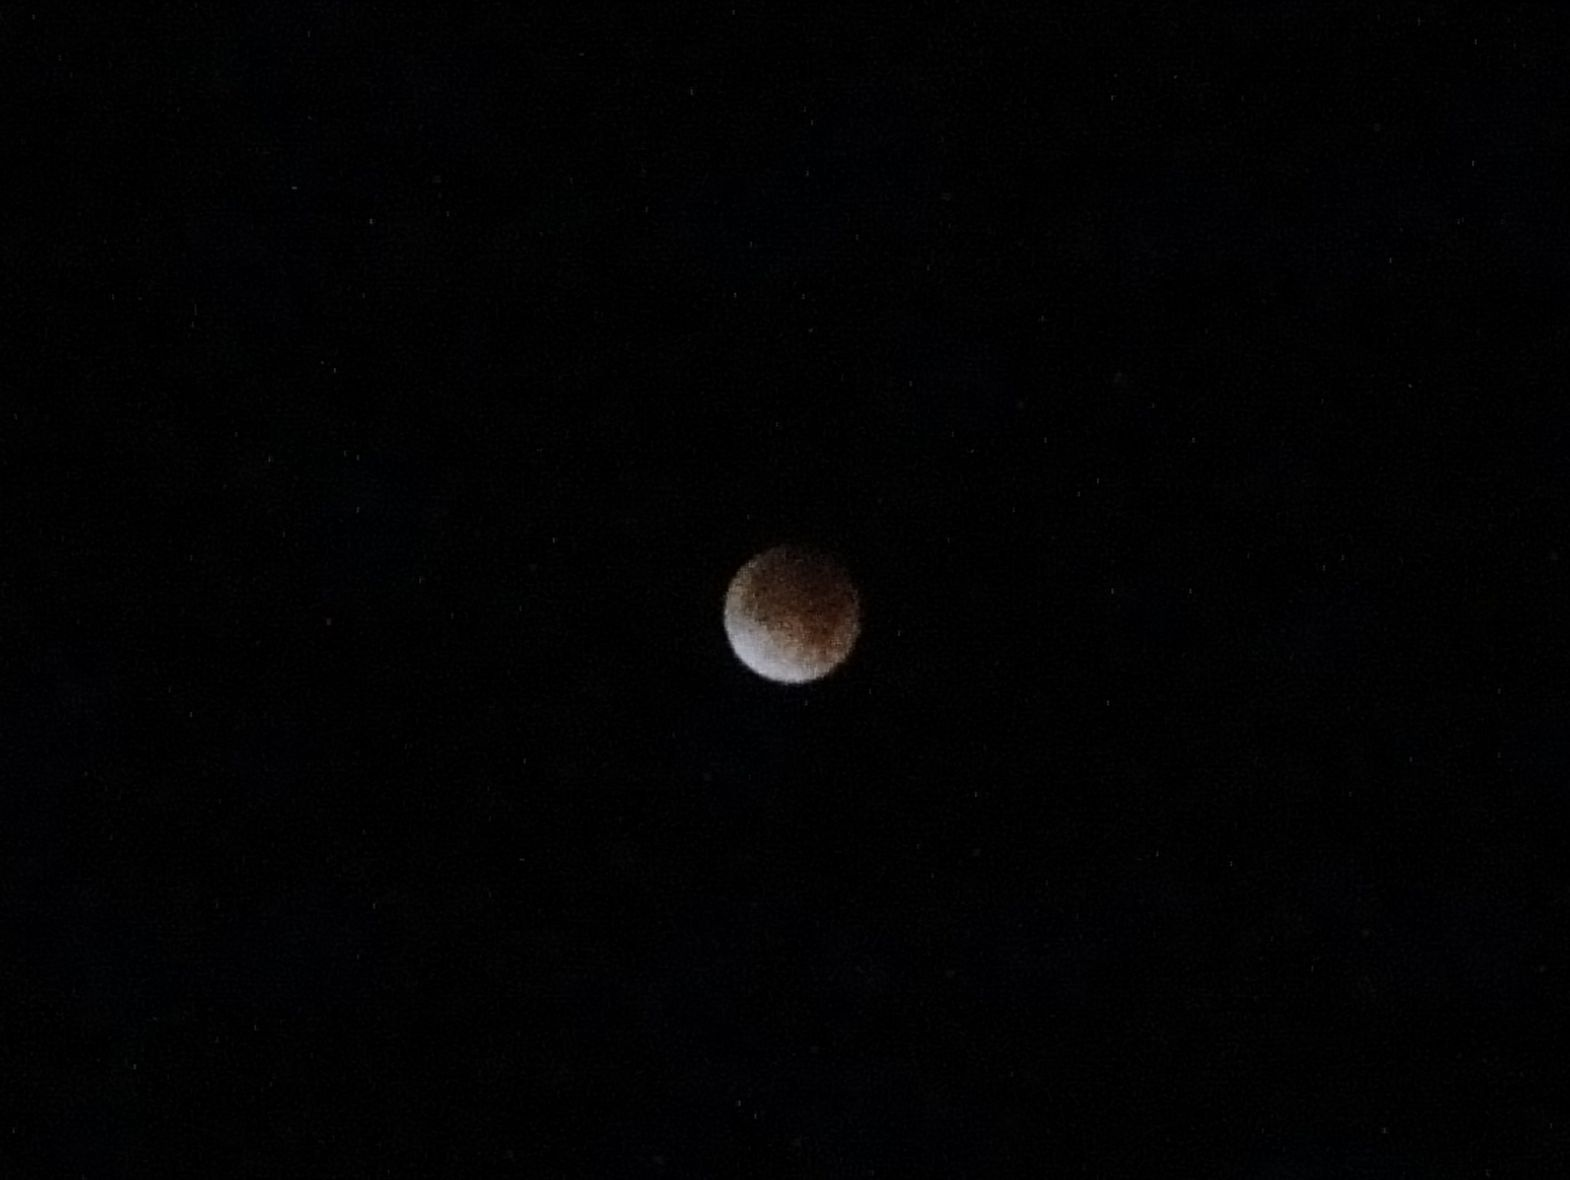 lunar_eclipse_147.jpg